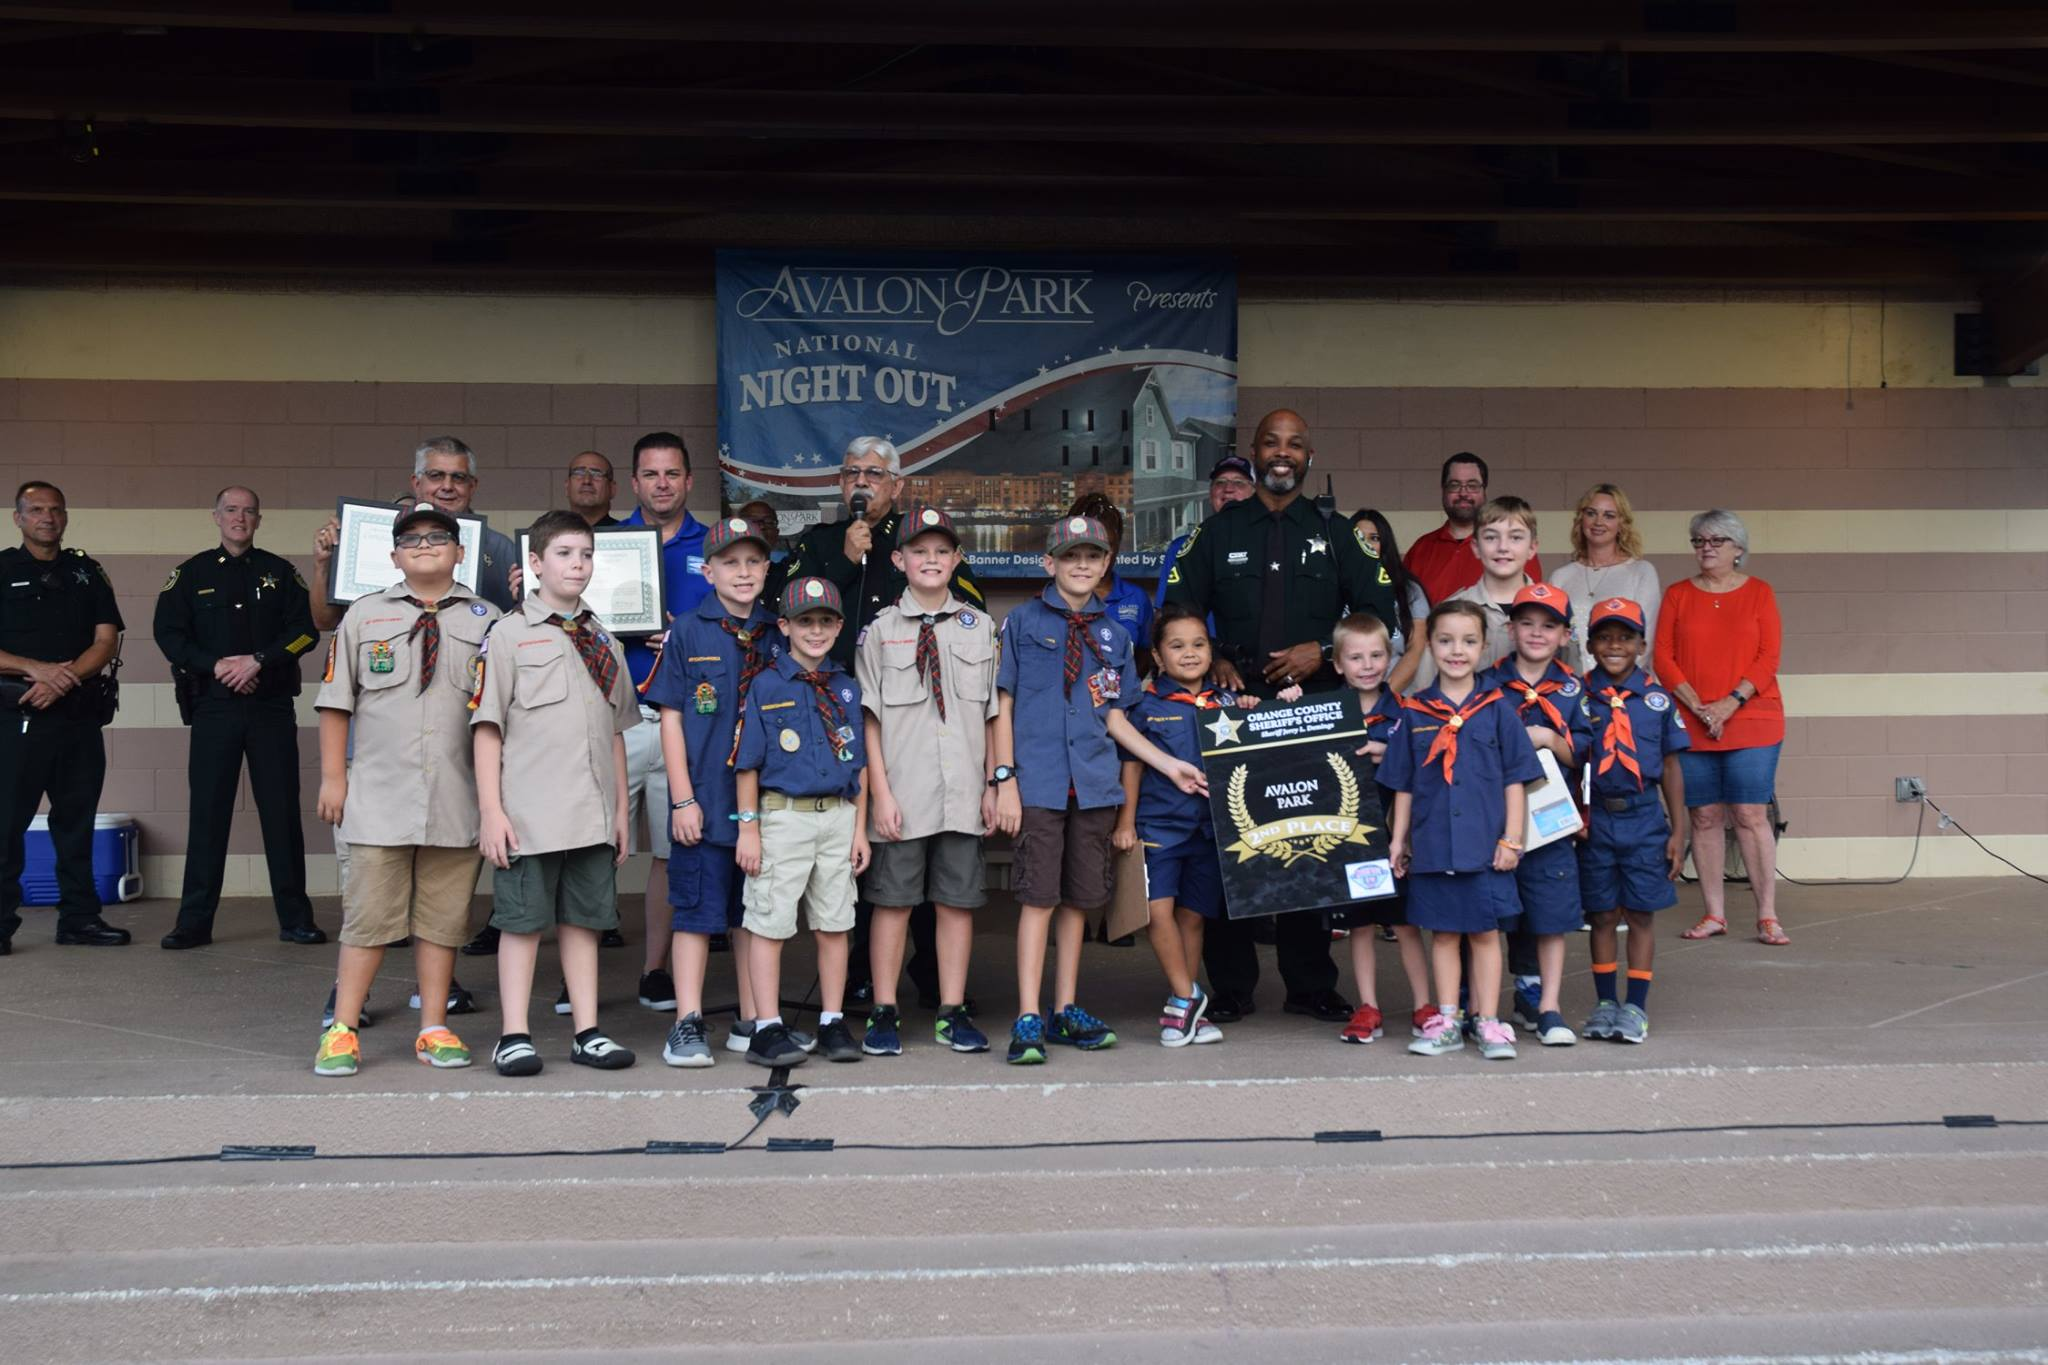 National Night Out award presentation